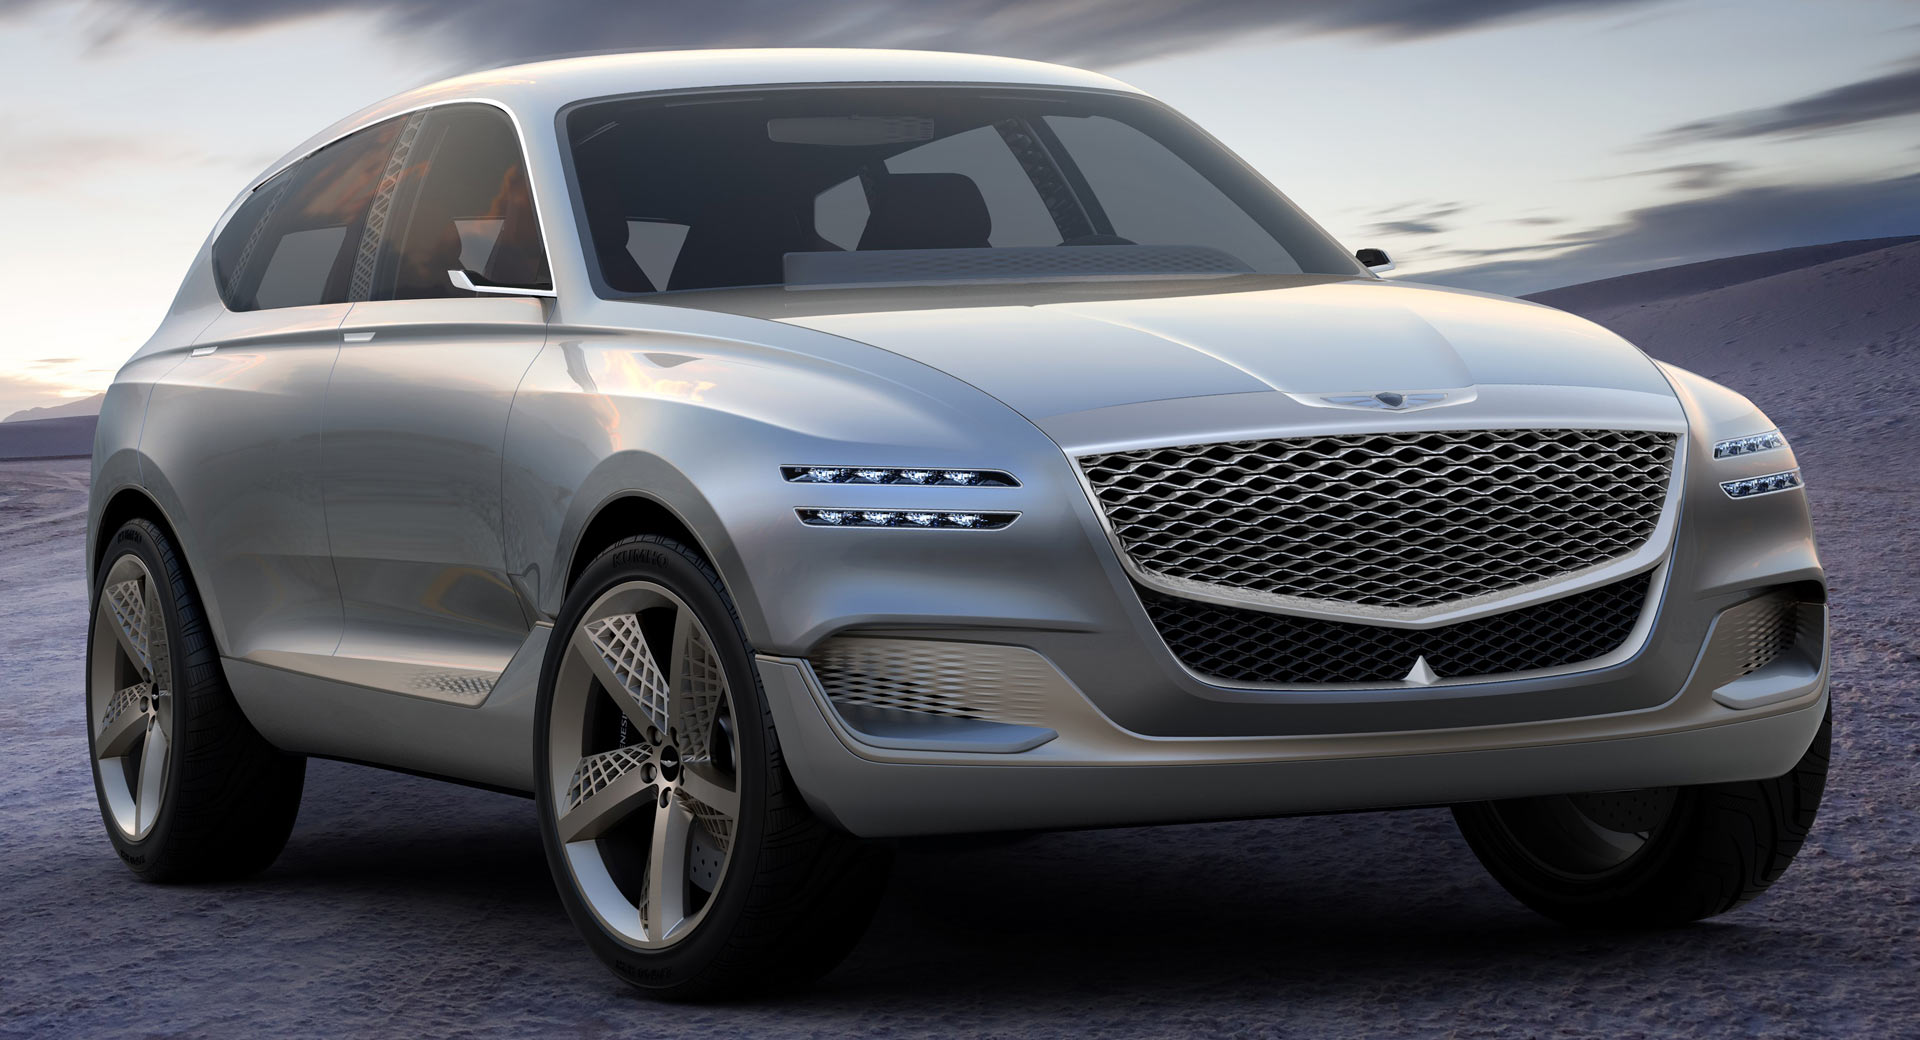 New Hyundai Sonata and Genesis SUV Coming Later This Year ...